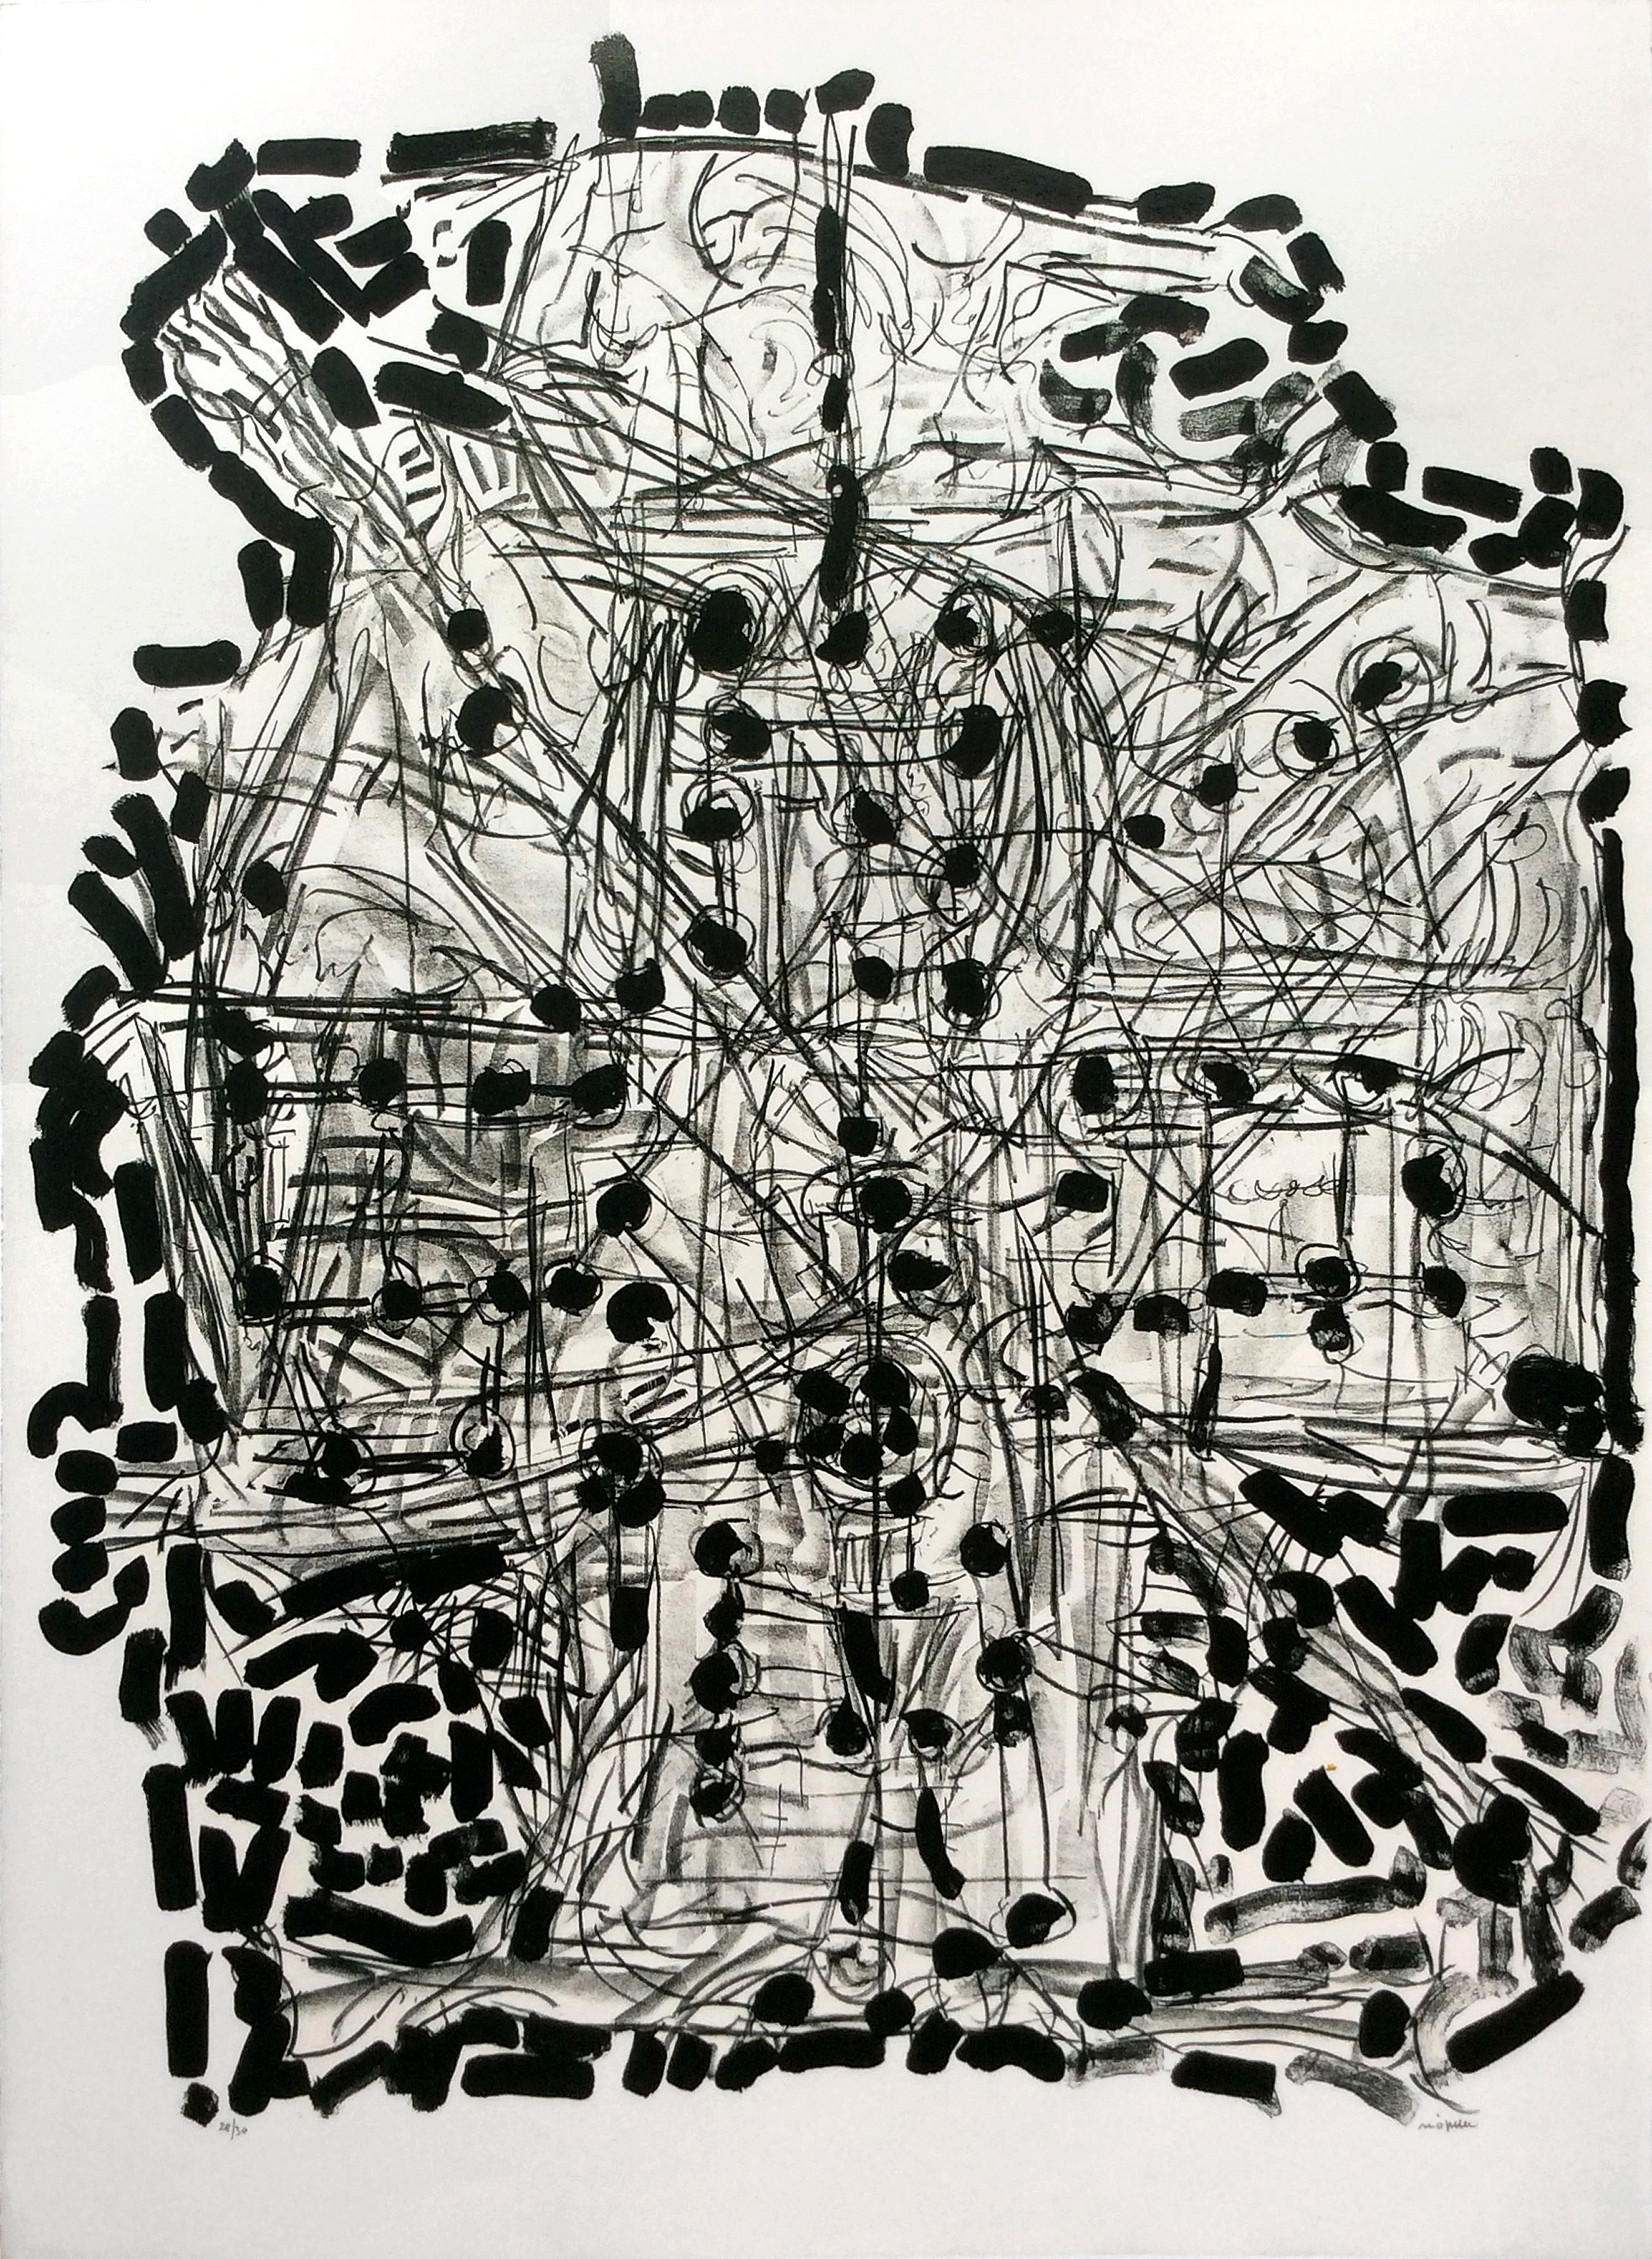 Suite Gaspésienne, 1972, 63 x 45.75 in., Lithograph on Arches paper (Ed. 27 of 30) (SOLD)